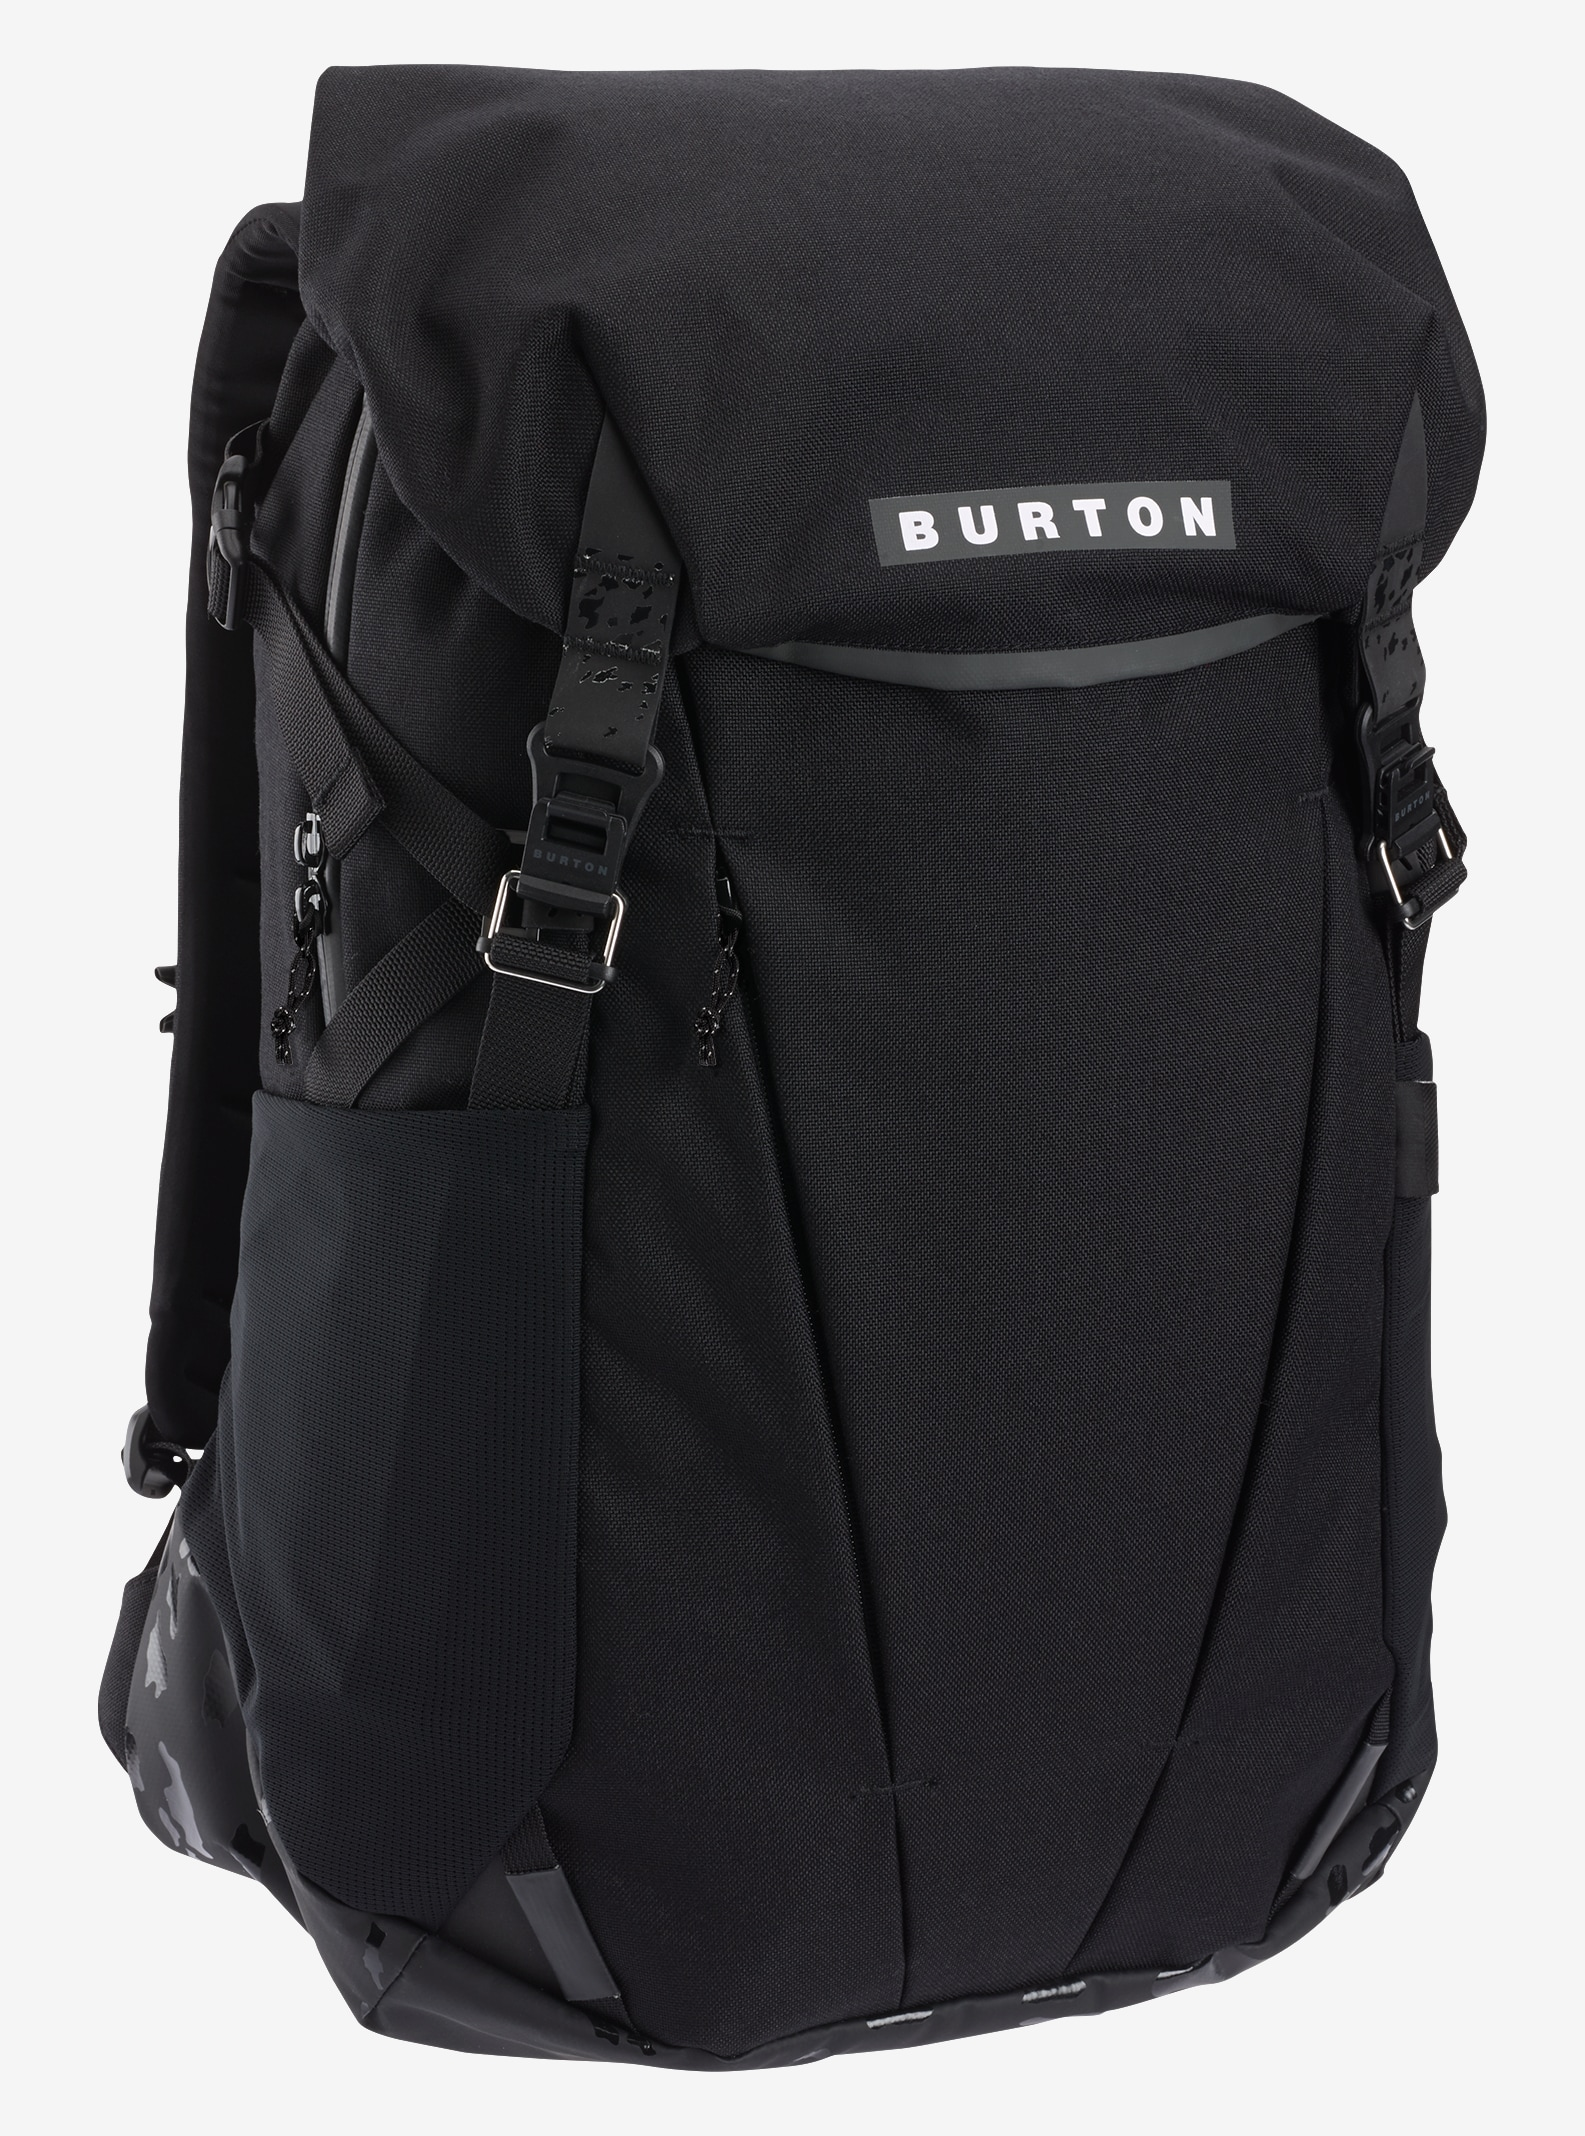 Burton Spruce Backpack shown in True Black Cordura®